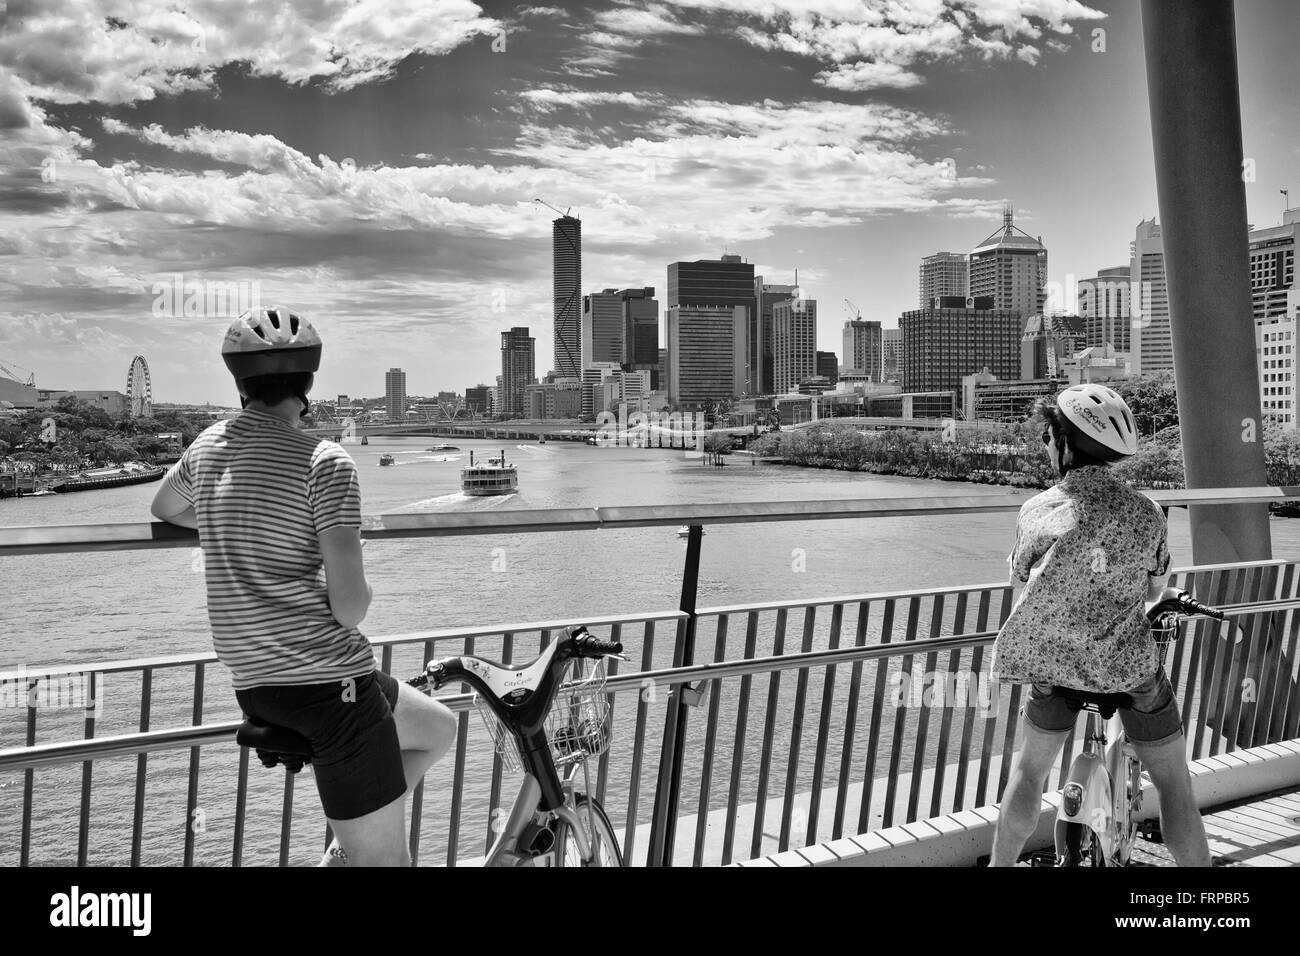 cyclists stop to admire the view of the city beyond the brisbane river on the Goodwill bridge - Stock Image